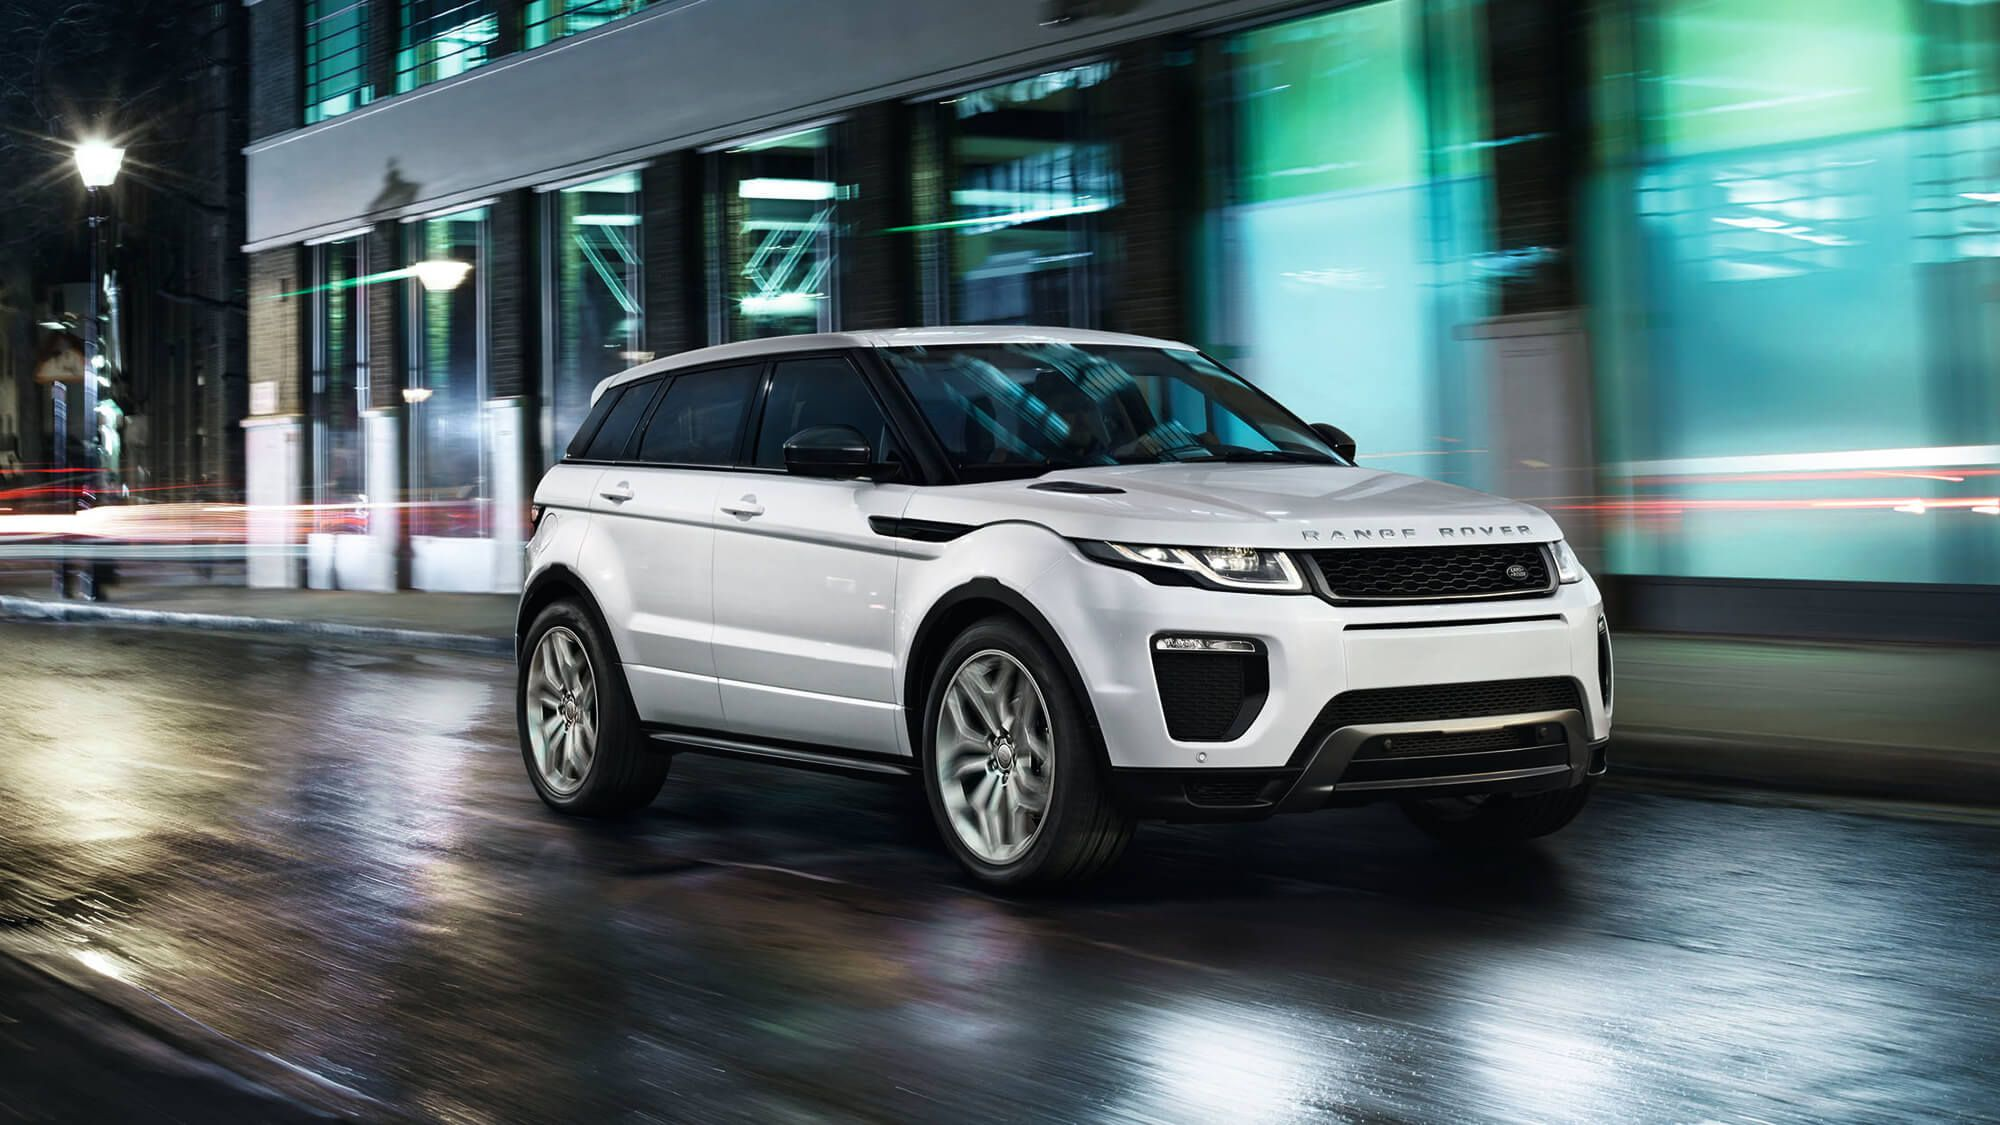 New Range Rover Evoque for Sale Finance & Part Exchange